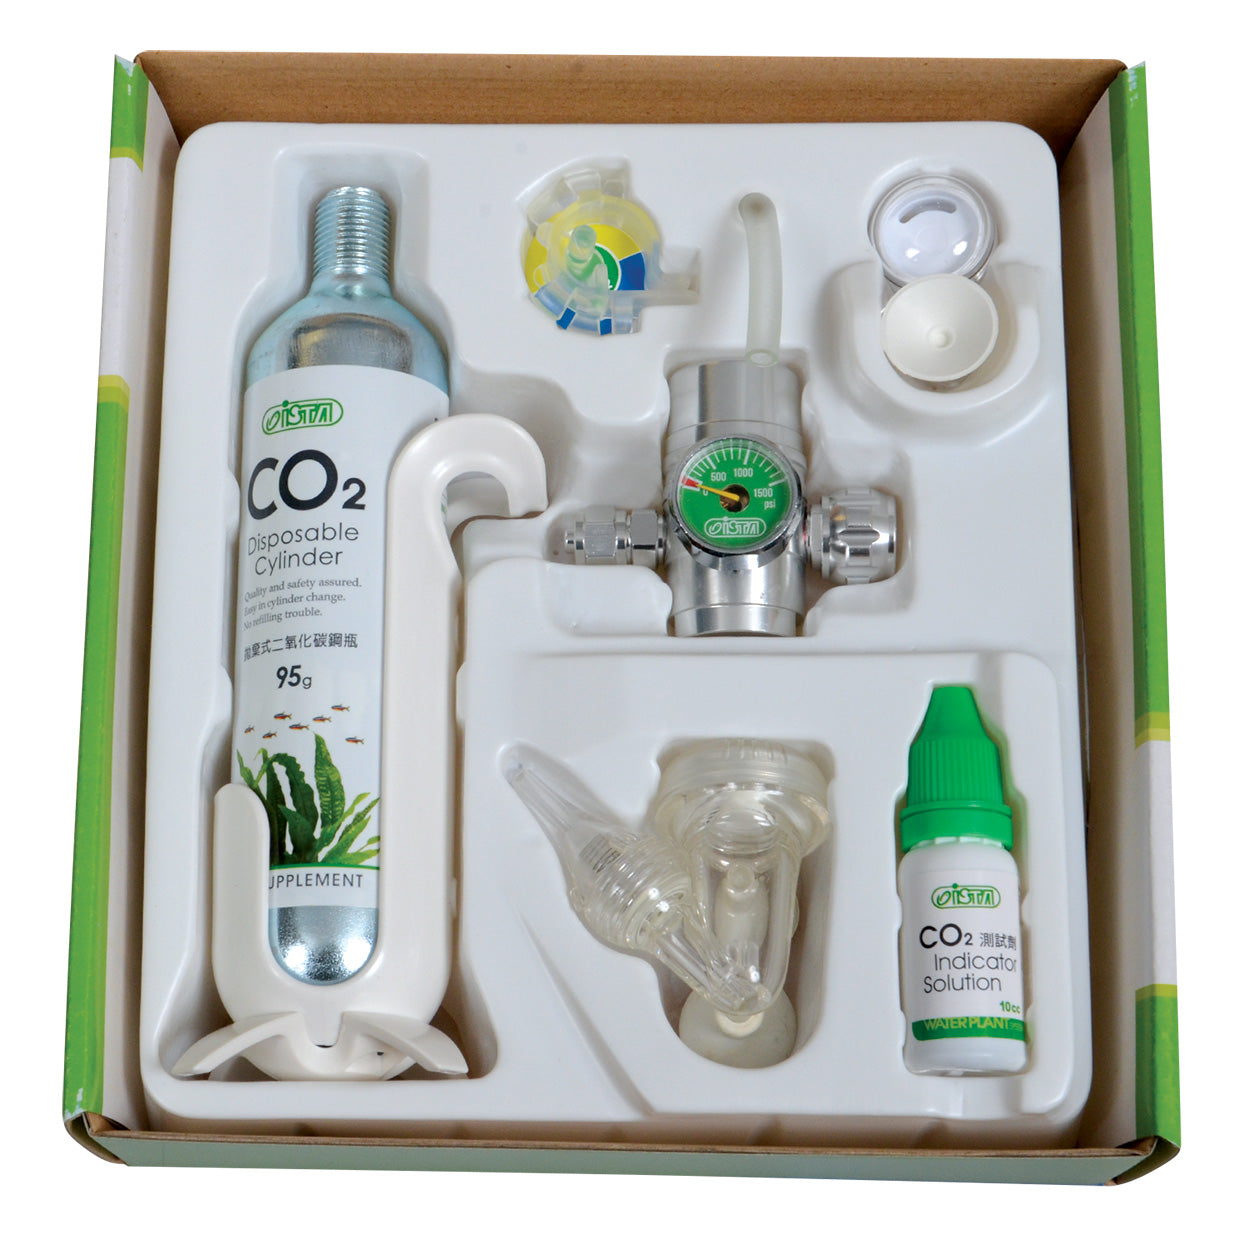 CO2 Disposable Supply Set - Advanced